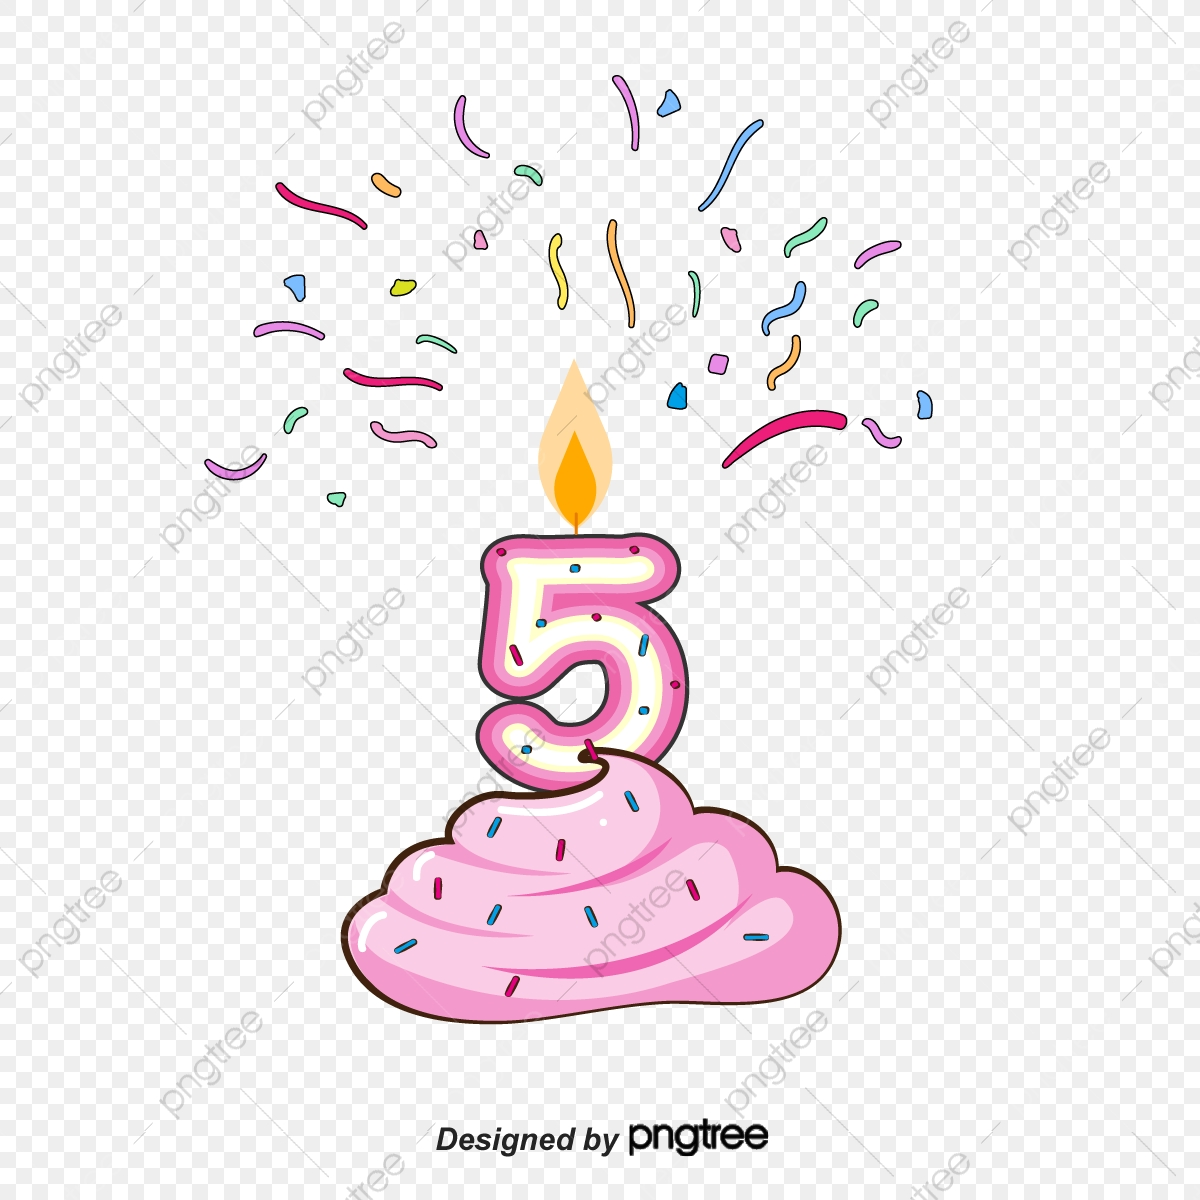 Number 5 Birthday Candles, Birthday Clipart, Vector Png, Color.